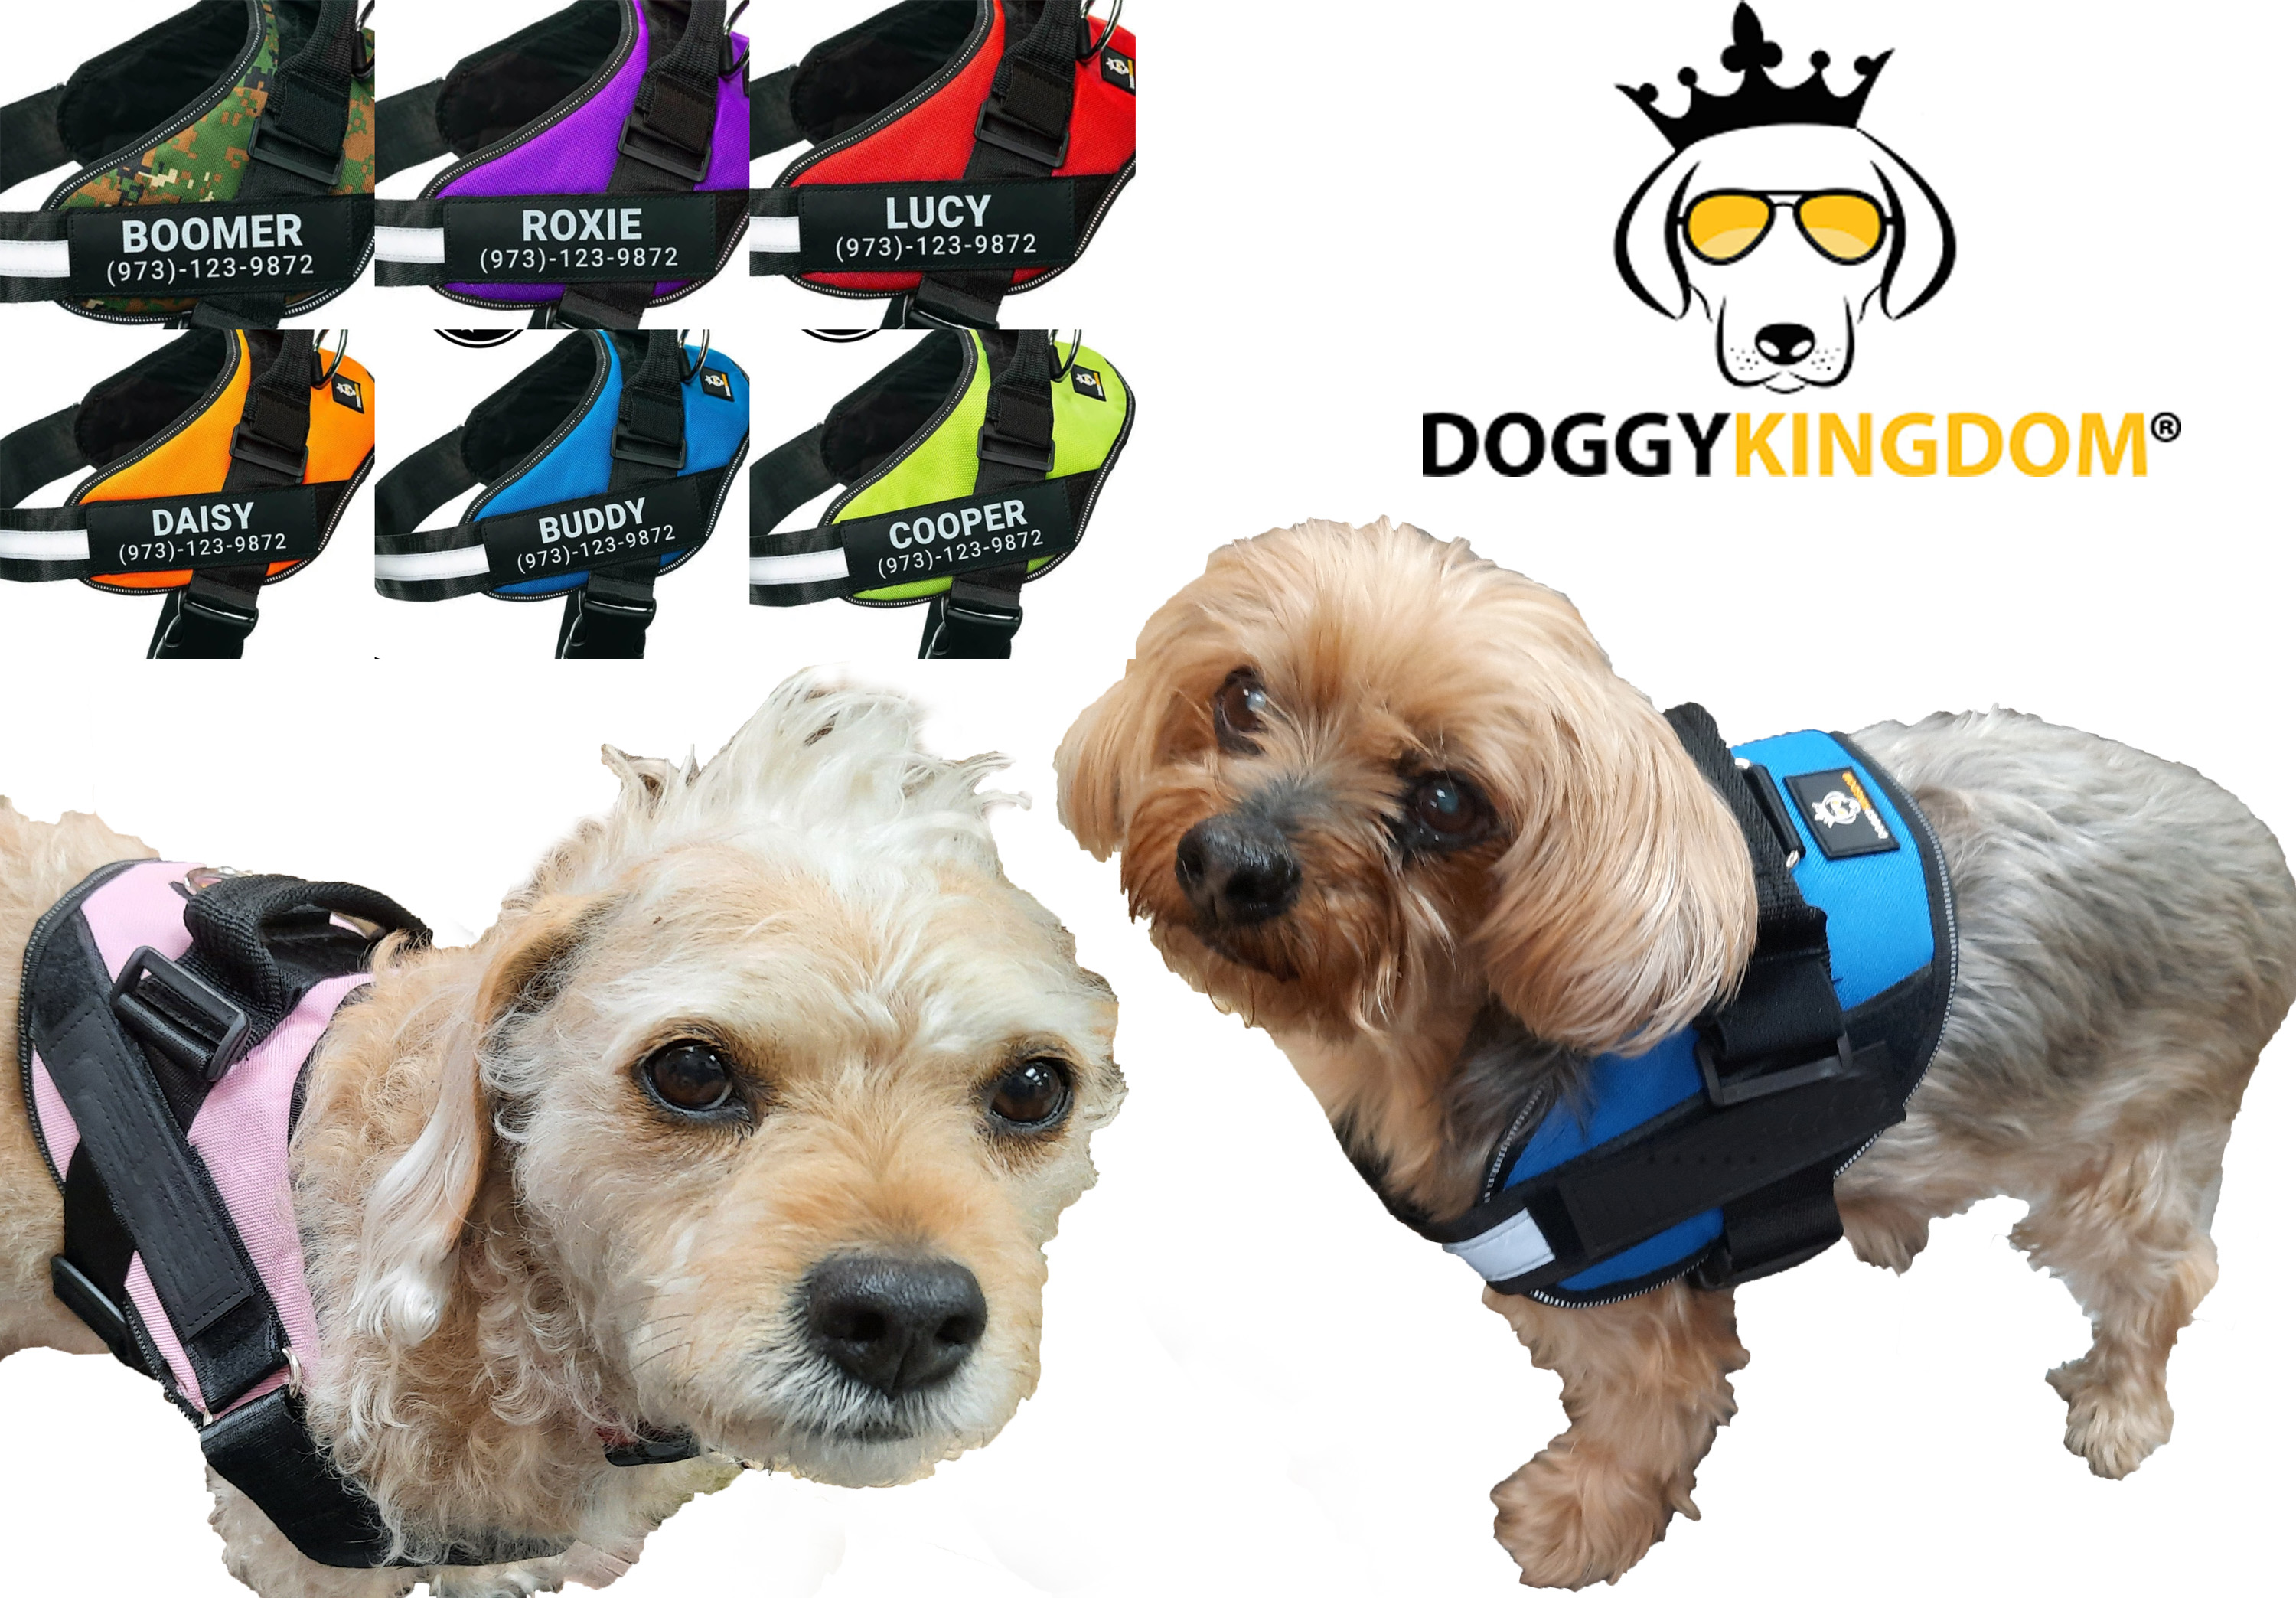 doggy kingdom, no pull harness, dog review